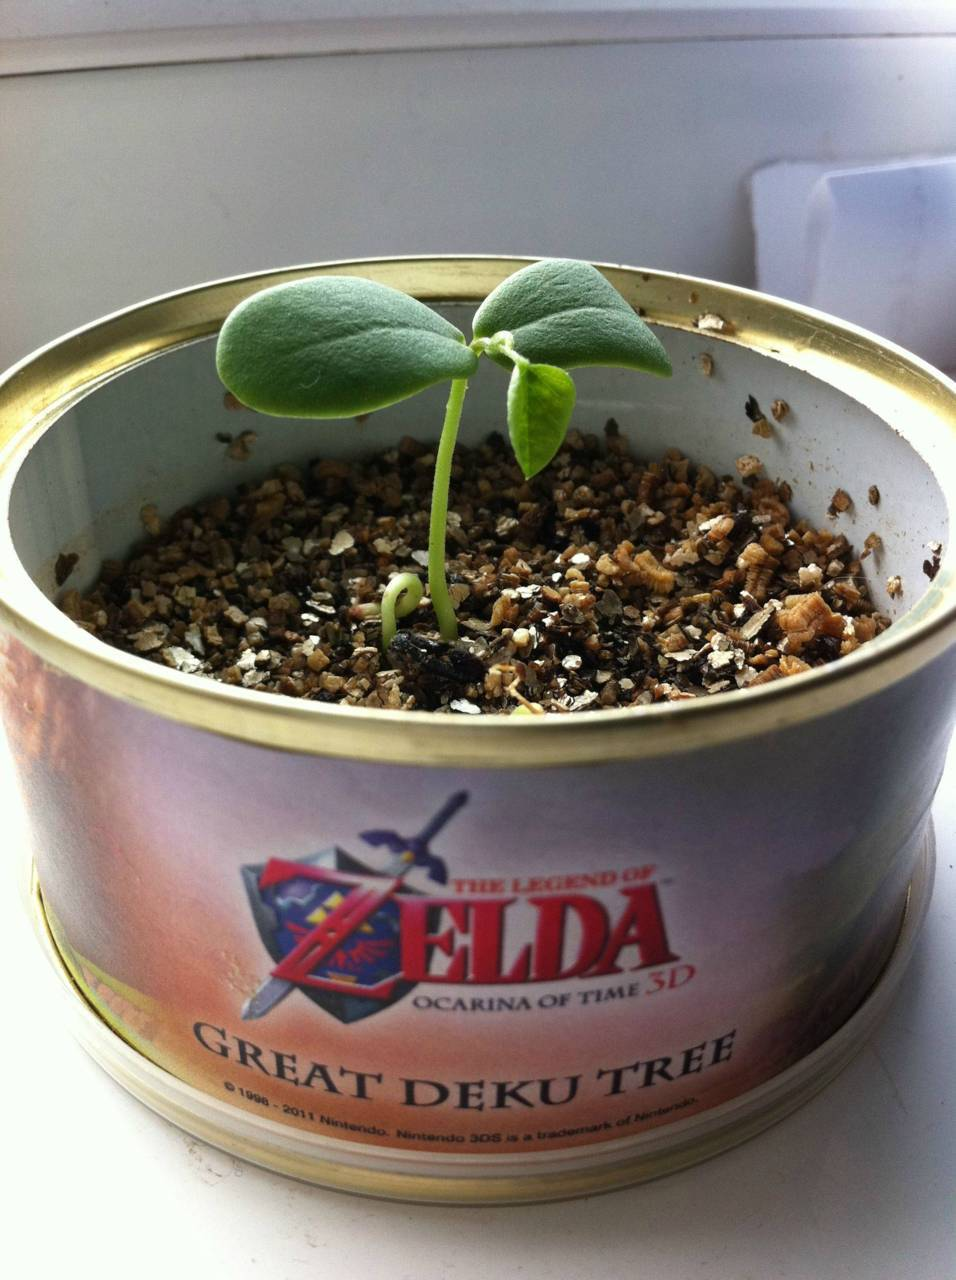 I want a Deku Tree!